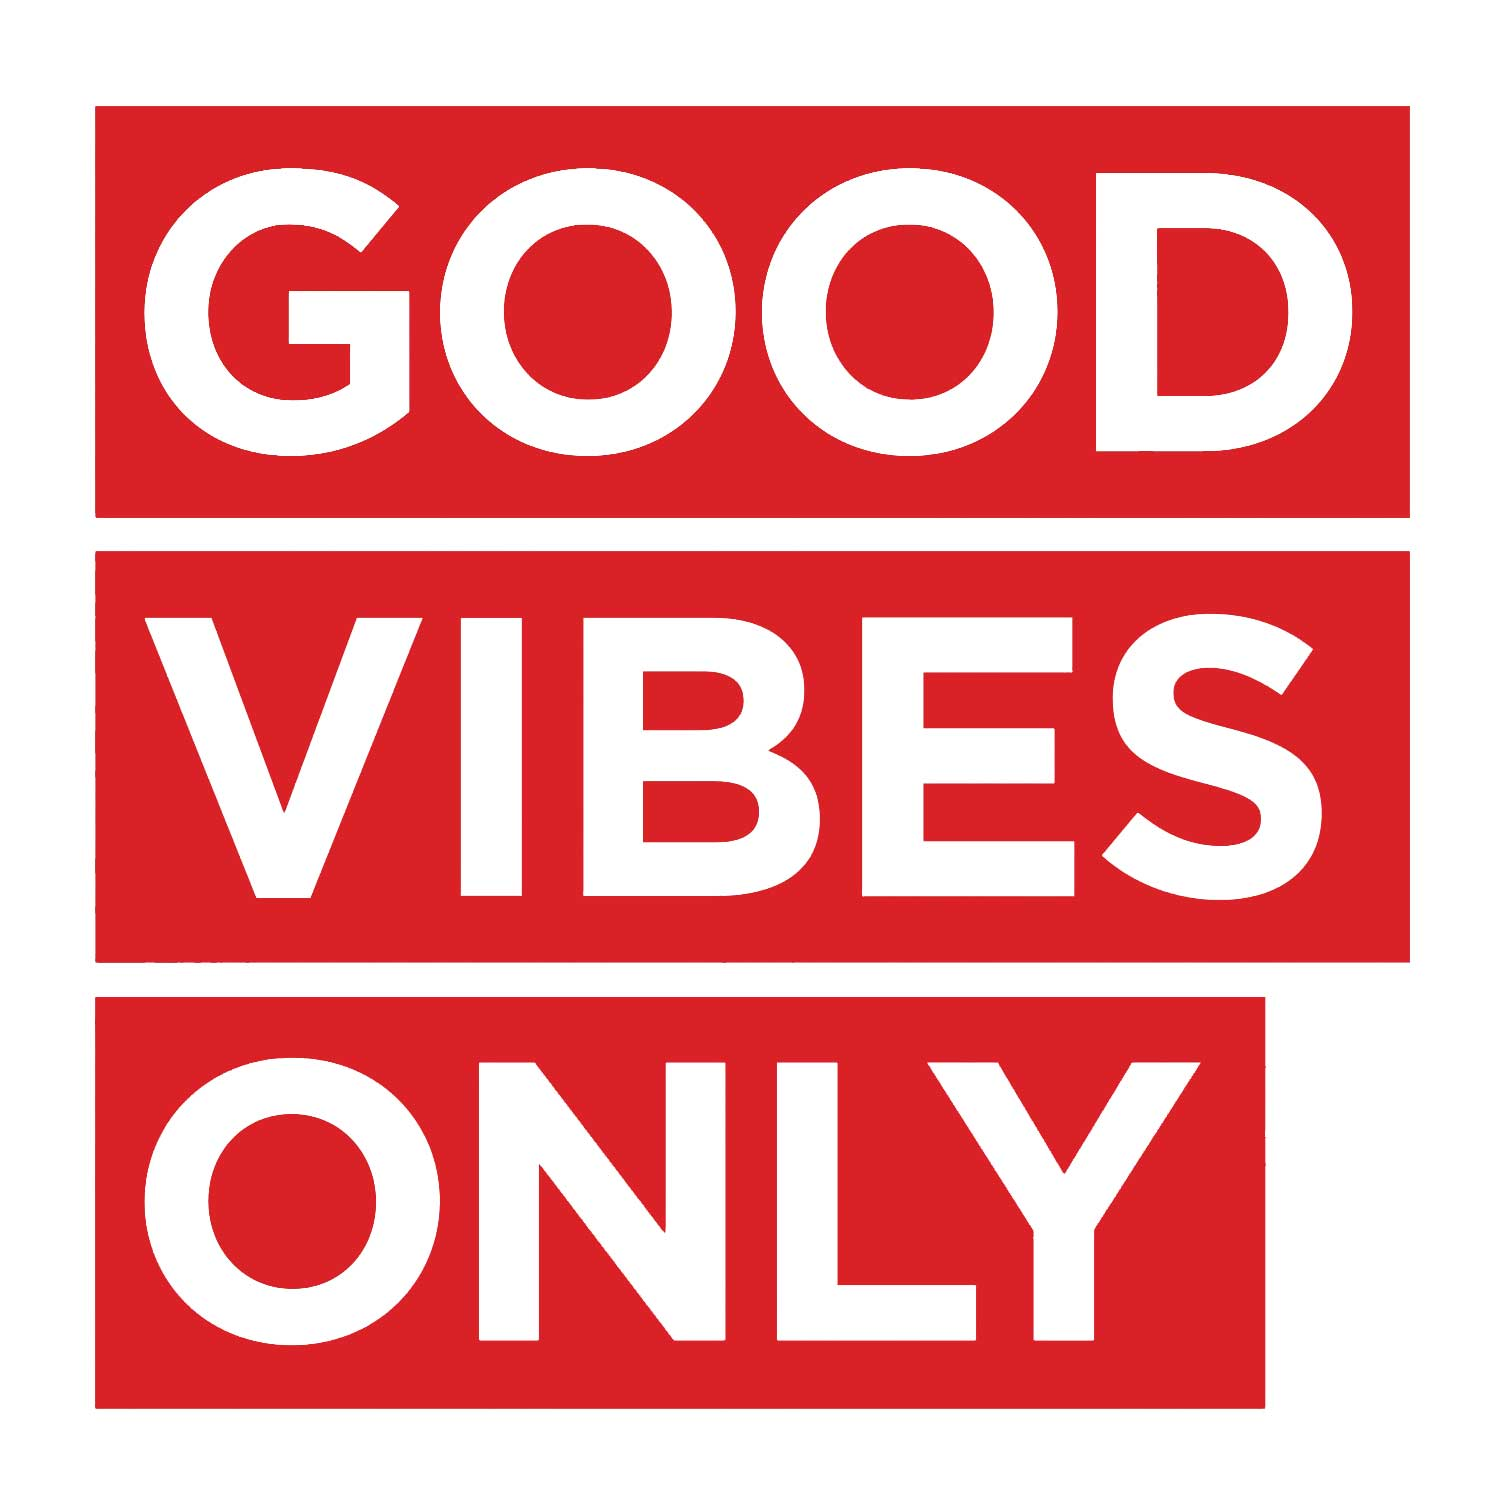 Good Vibes Only Decal - Red Small